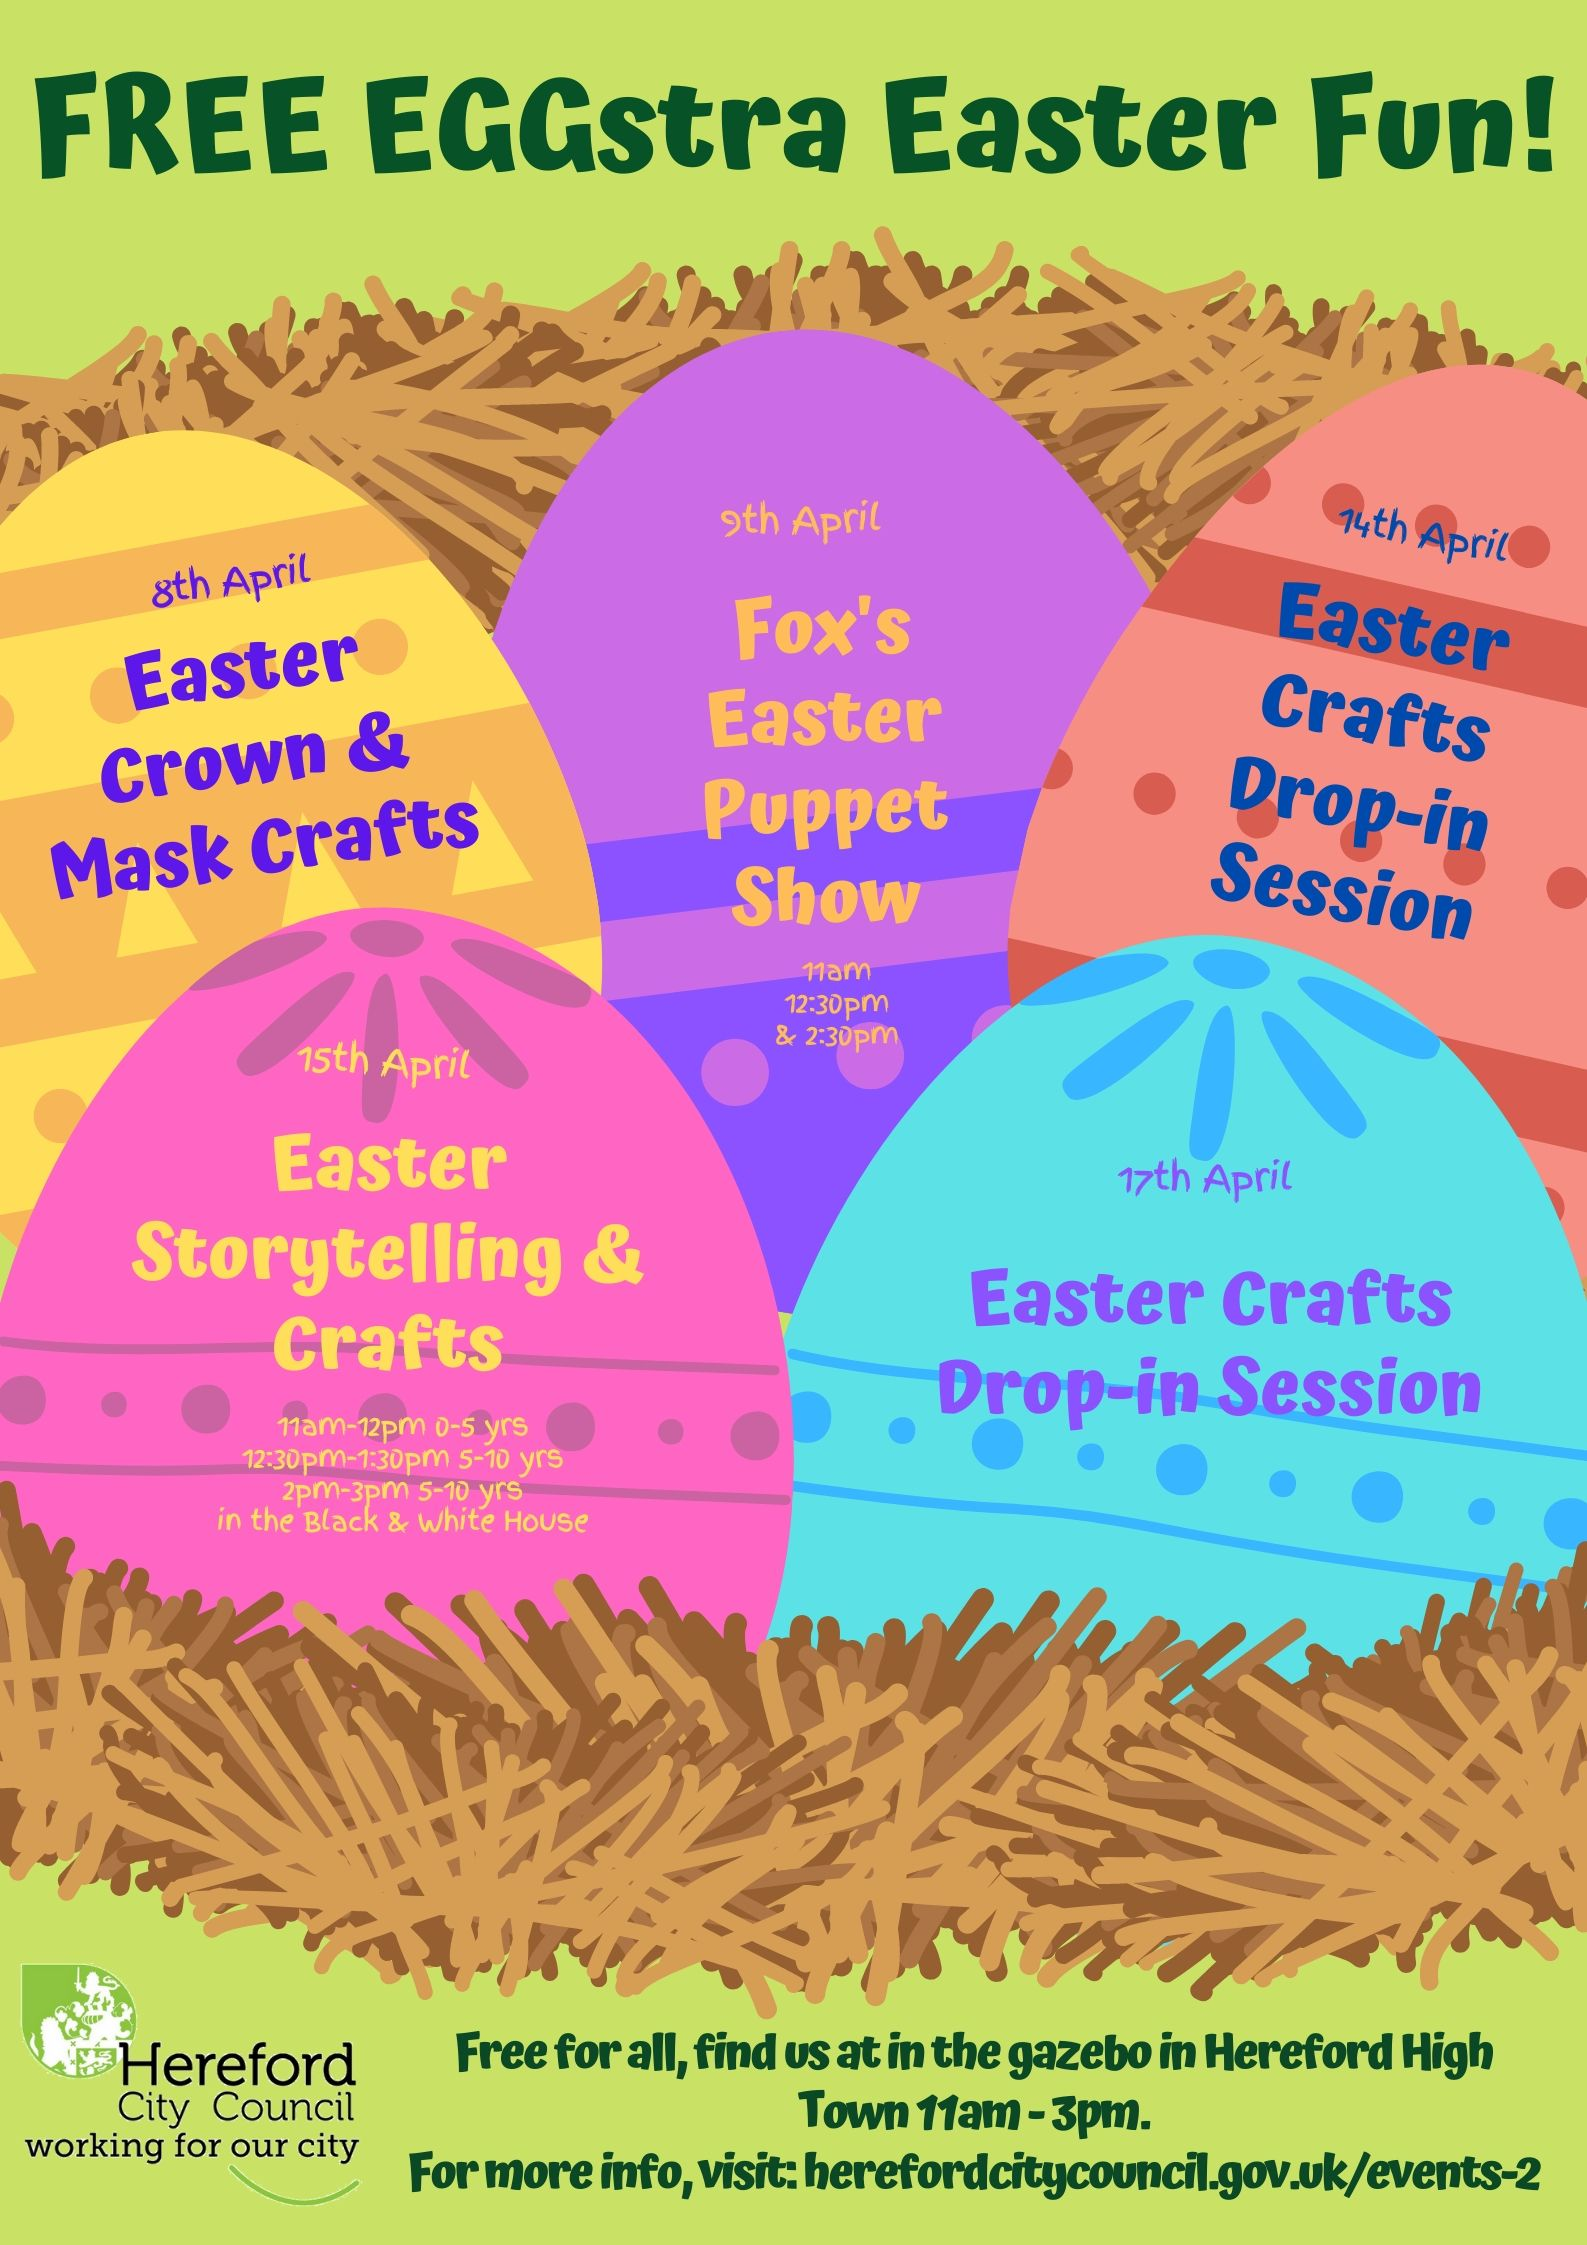 EGGstra Easter Fun: Easter Crown & Mask Crafts